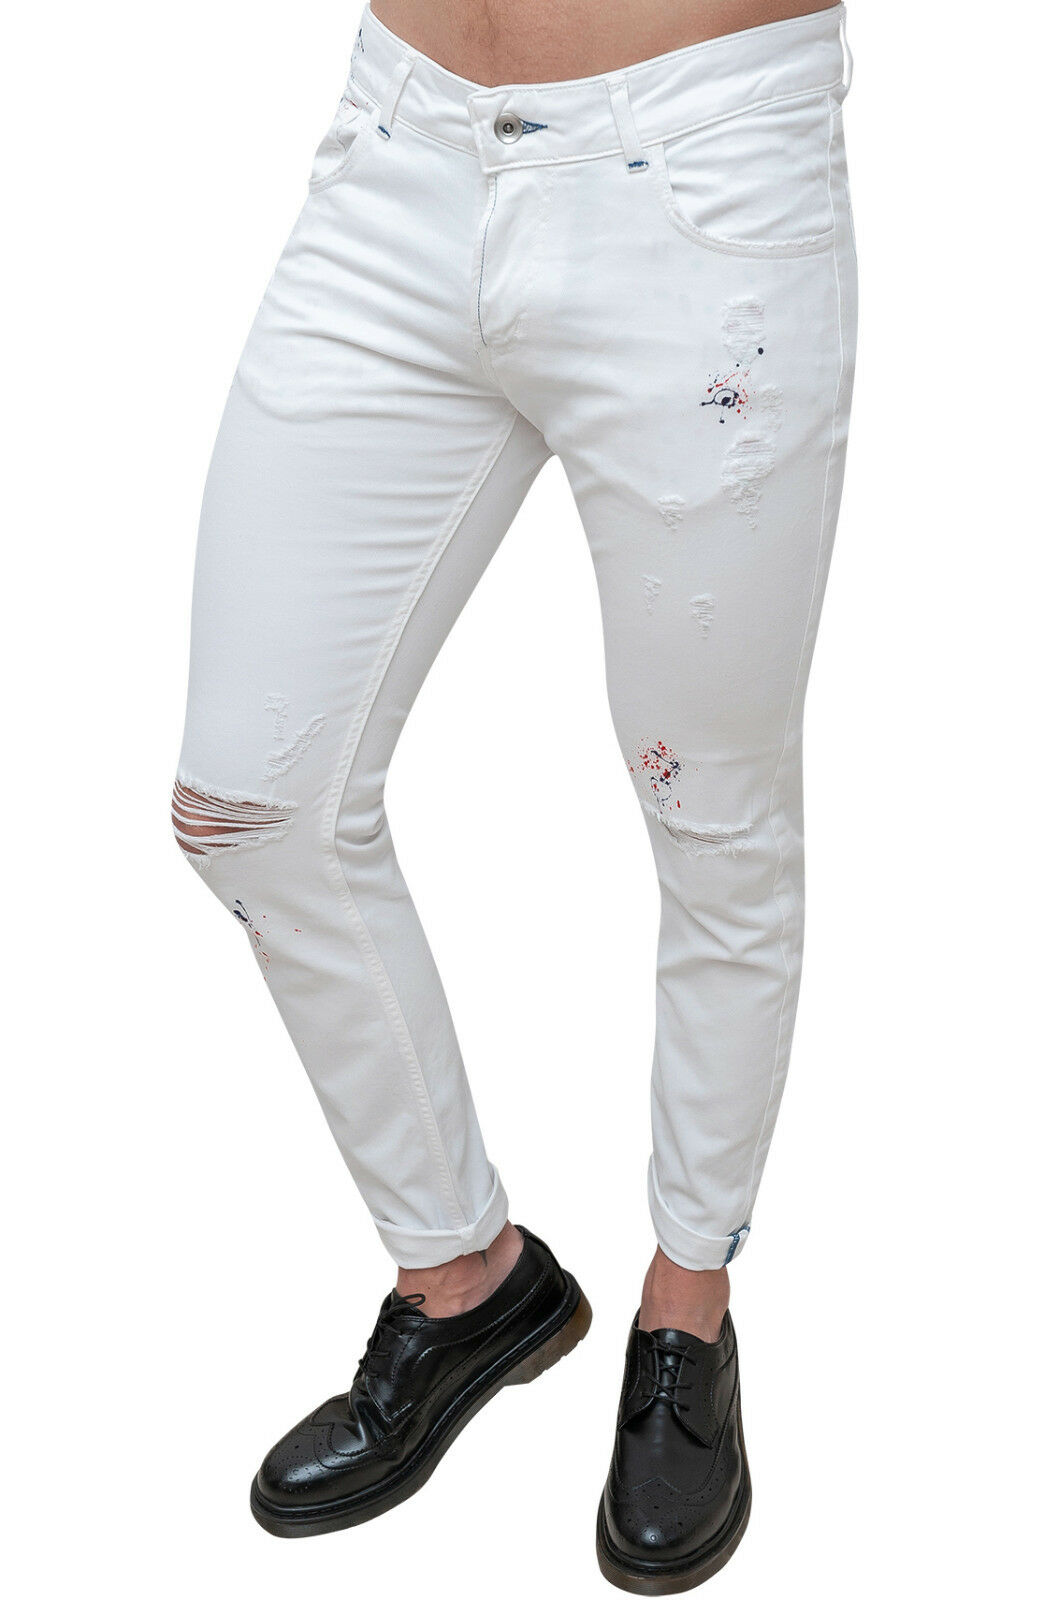 PANTALONI men BATTISTINI SARTORIALE BIANCO CASUAL COTONE 5 TASCHE MADE IN ITALY